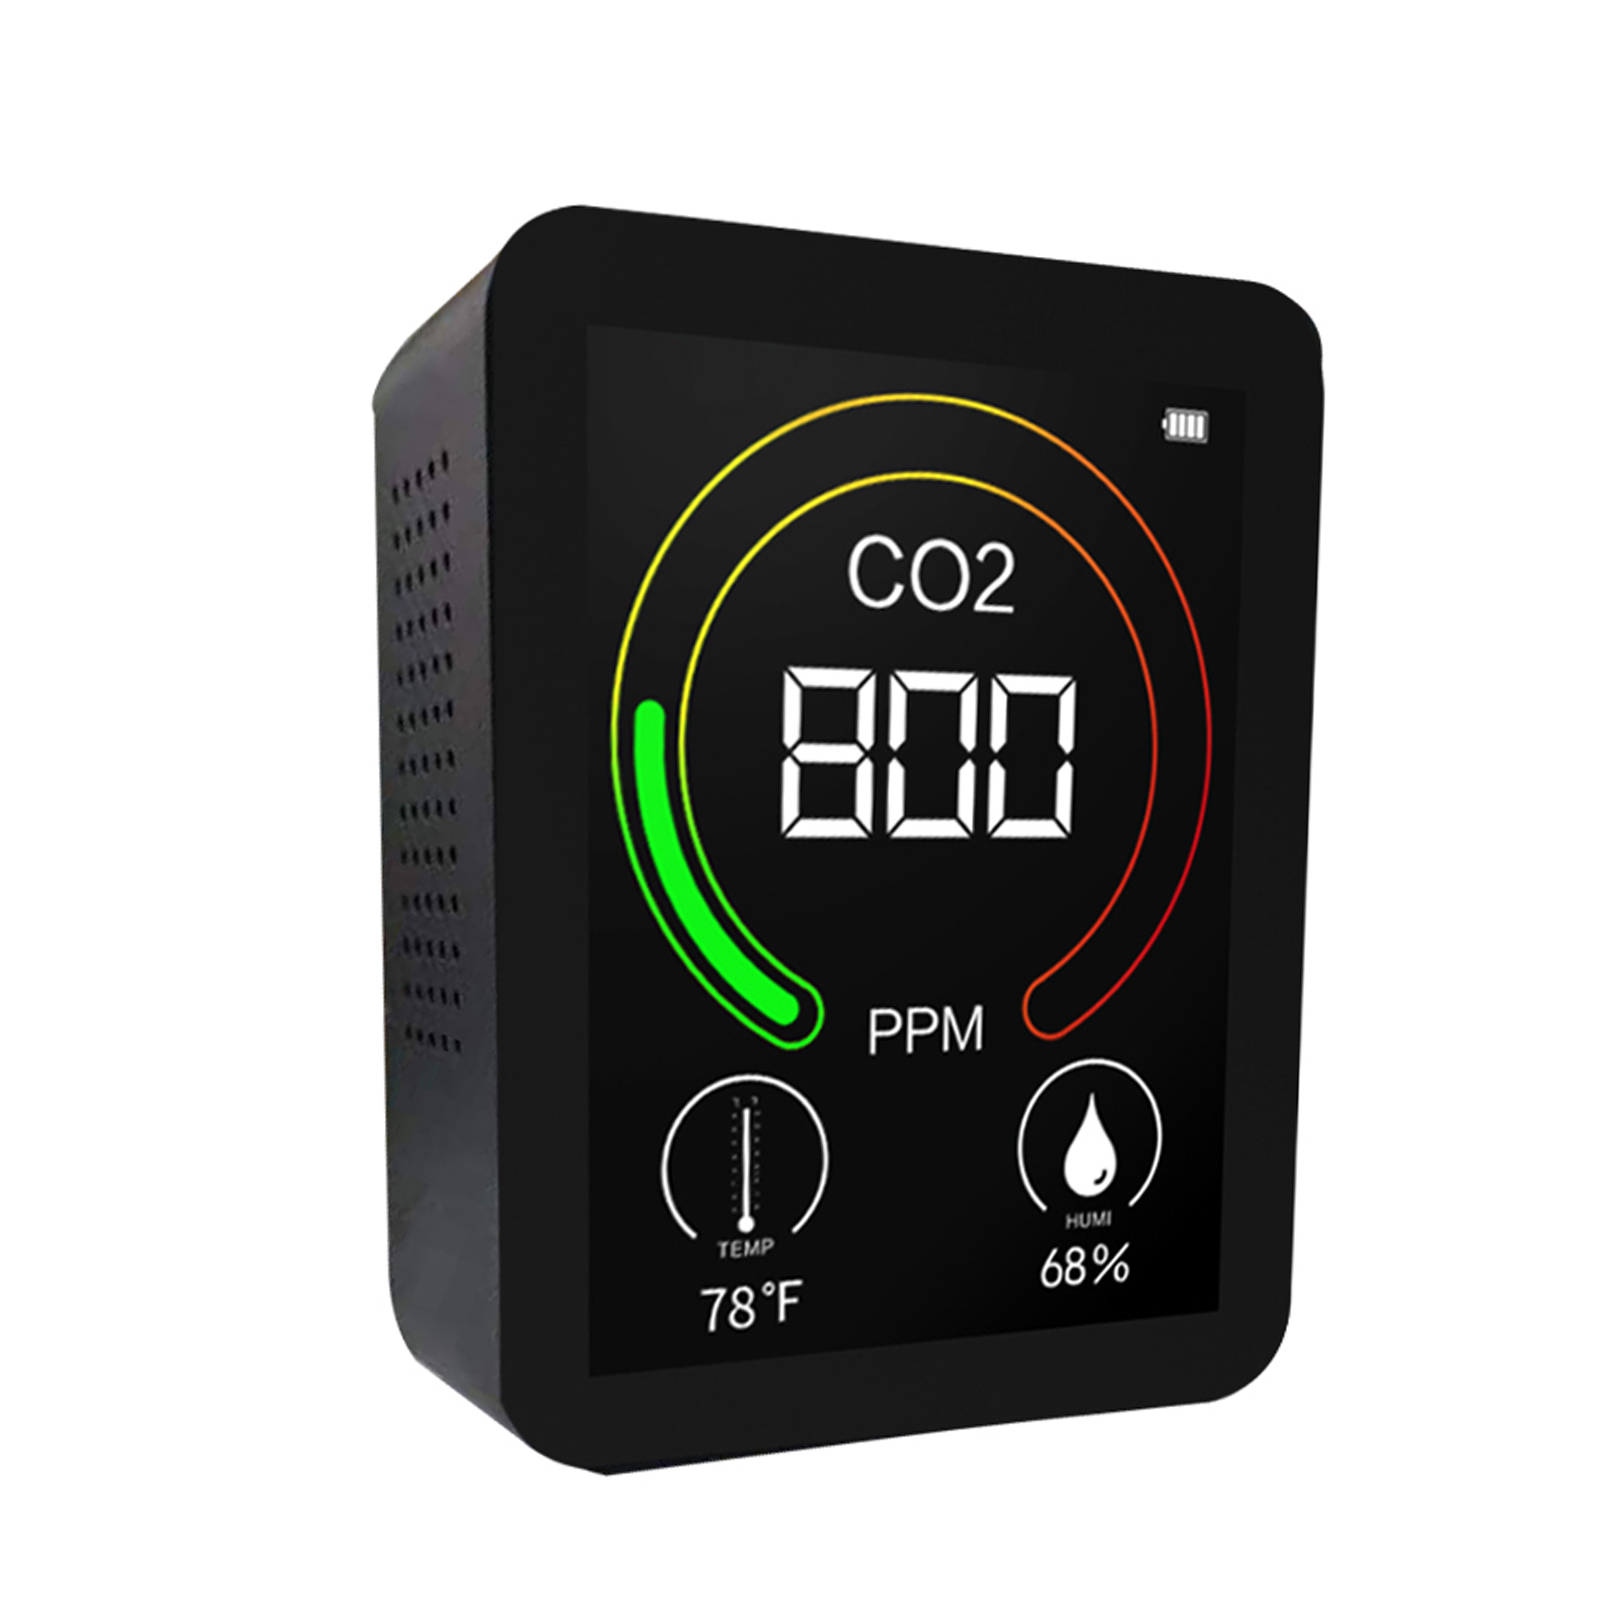 Adaptable Co2 Dector Meter Monitor Air Quality Monitor Co2 Temperature Humidity Multipurpose Detect Tools Portable Testing Instrumen Less Expensive